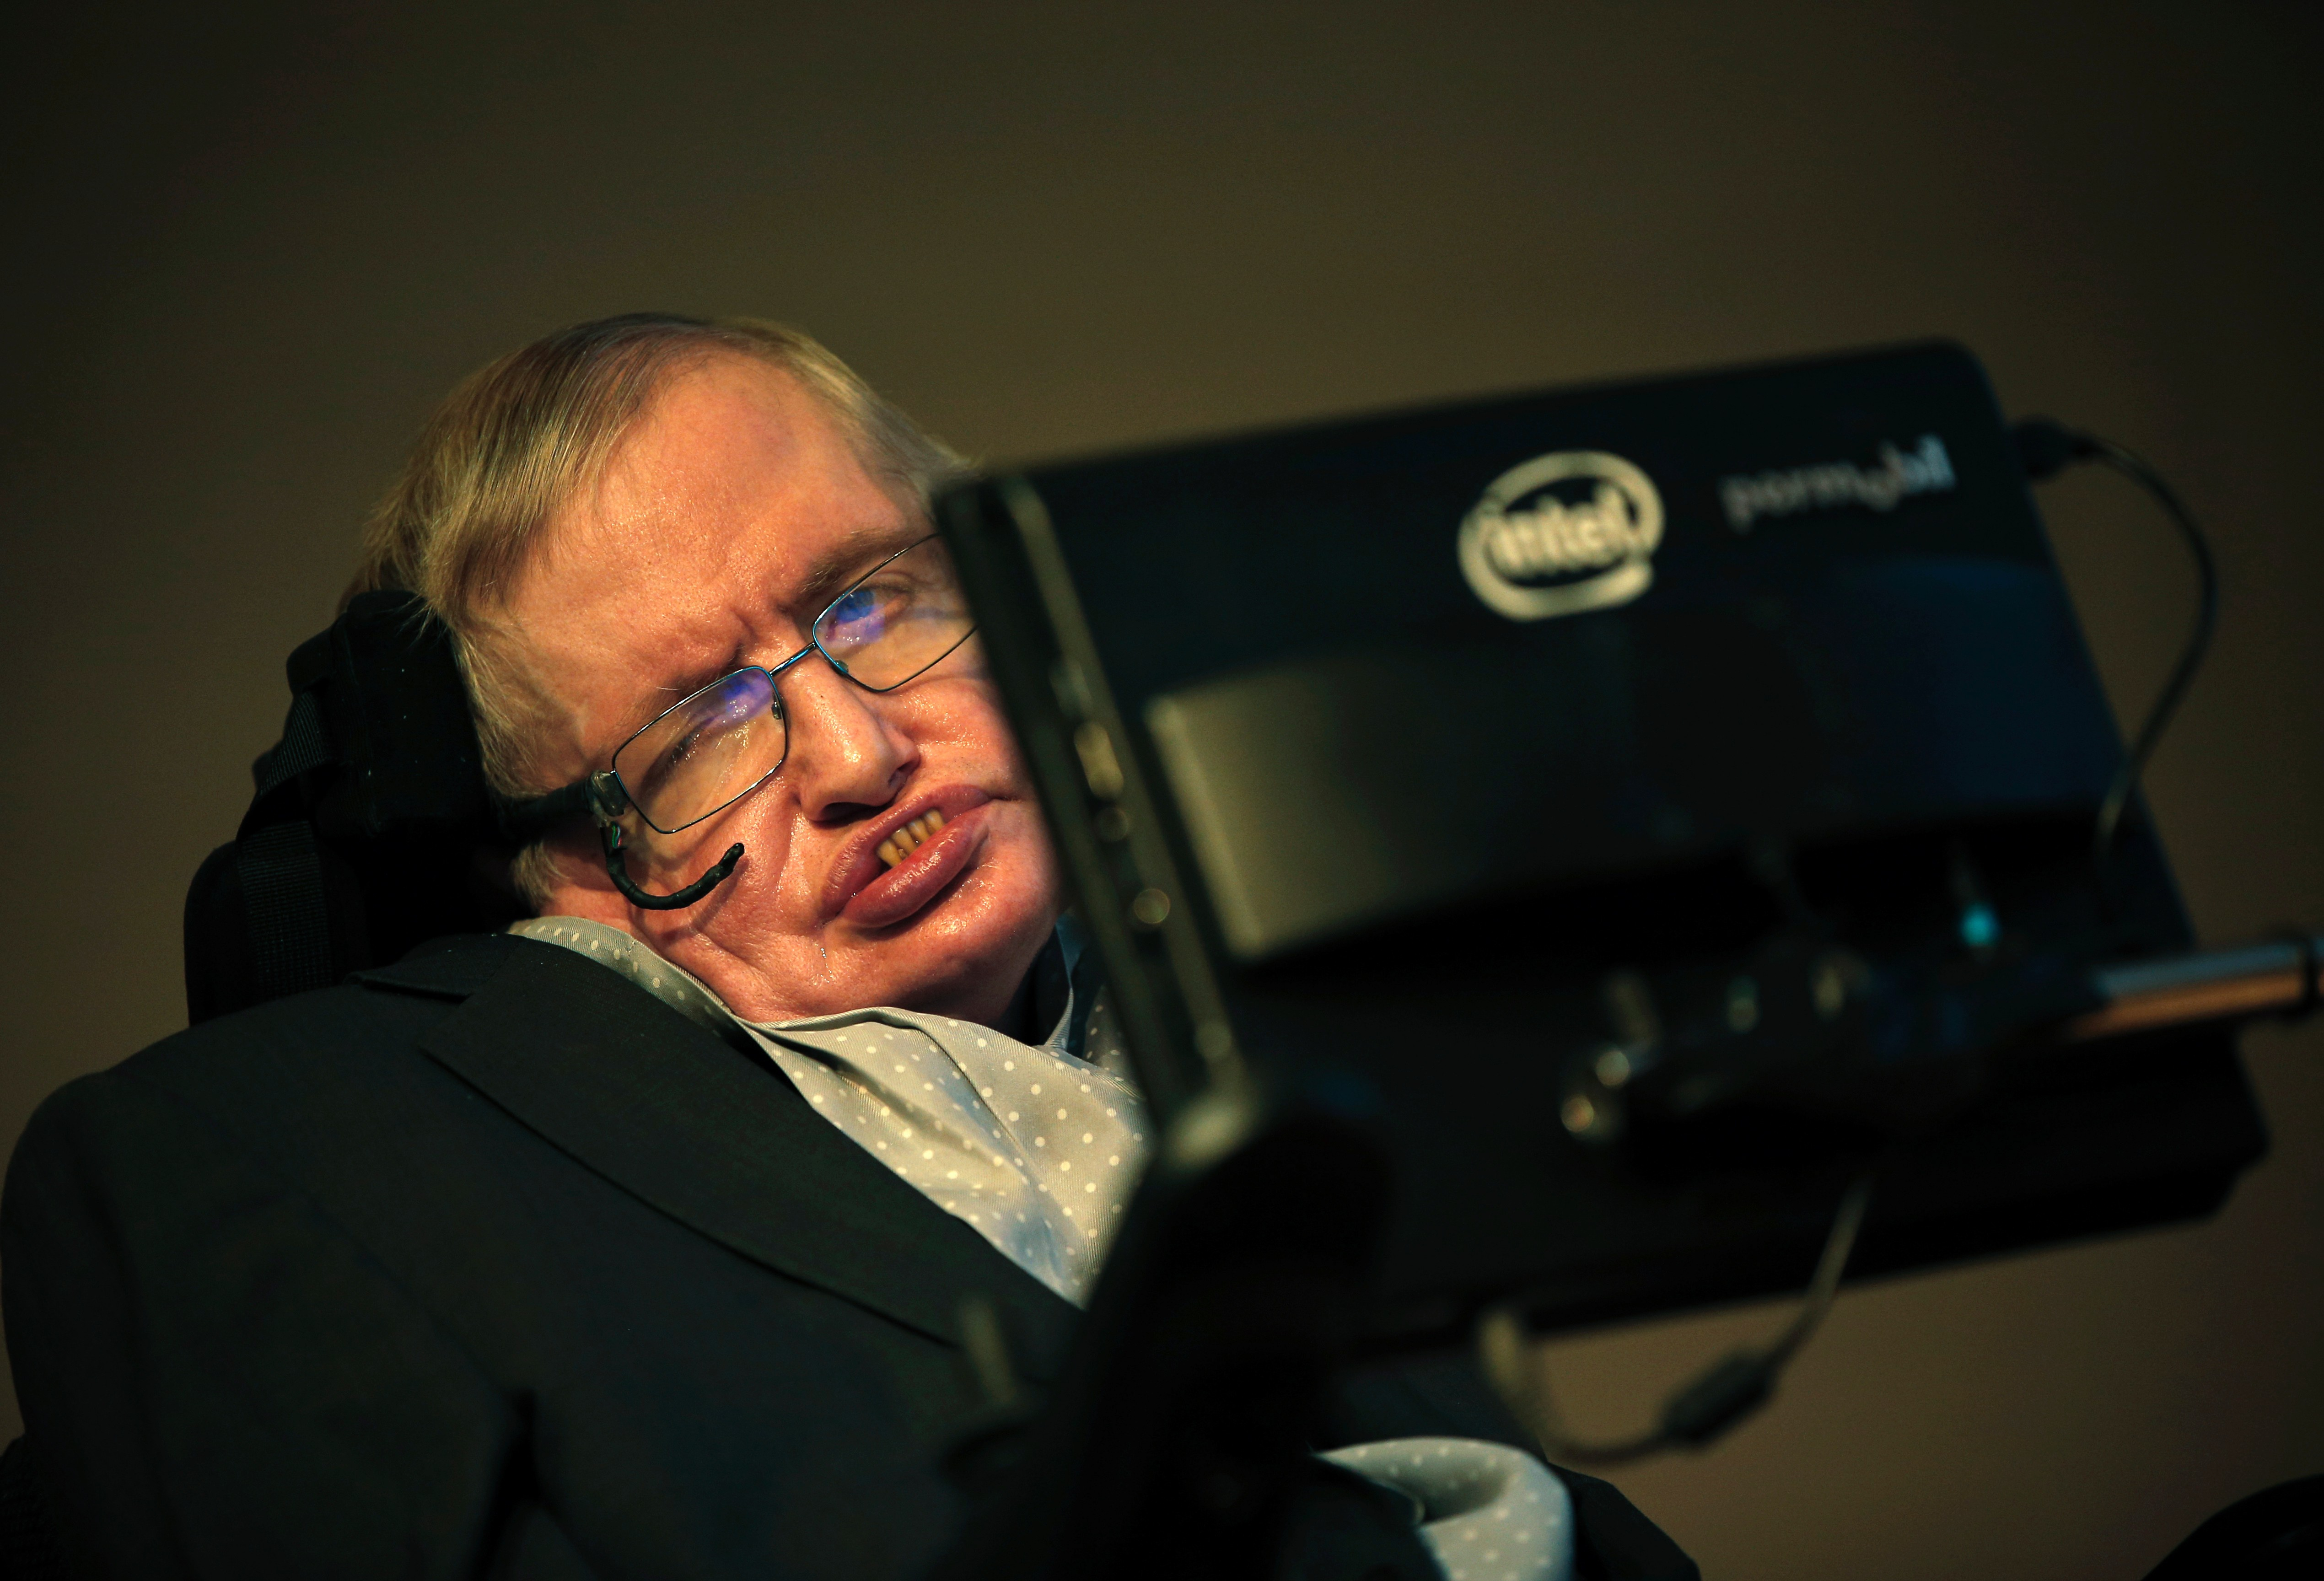 Professor Stephen Hawking attends a press conference to announce a new award for science communication in London on December 16, 2015.